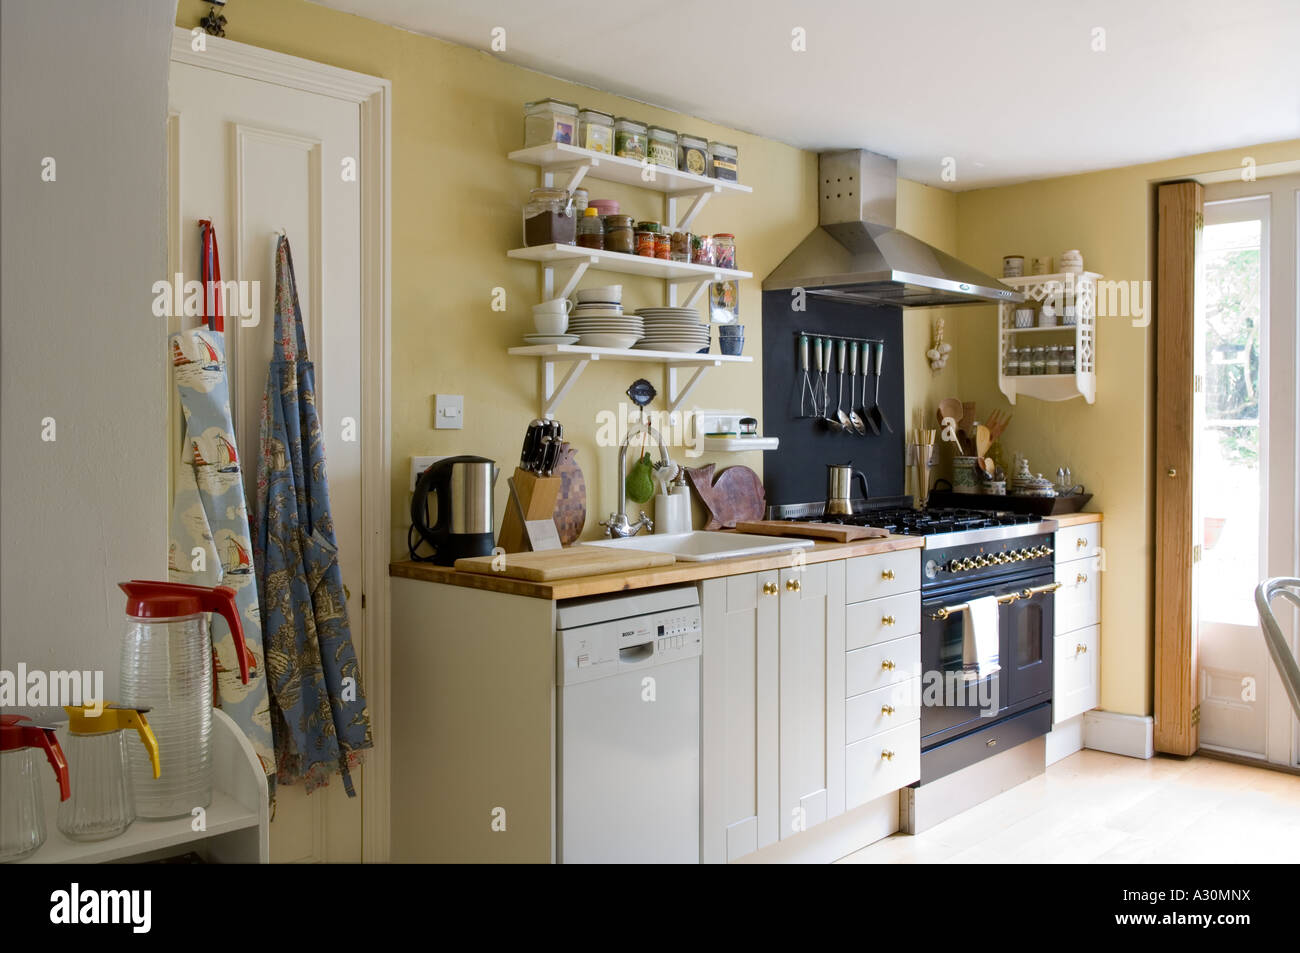 Kitchen of a Victorian house in London home to a jewelery designer - Stock Image